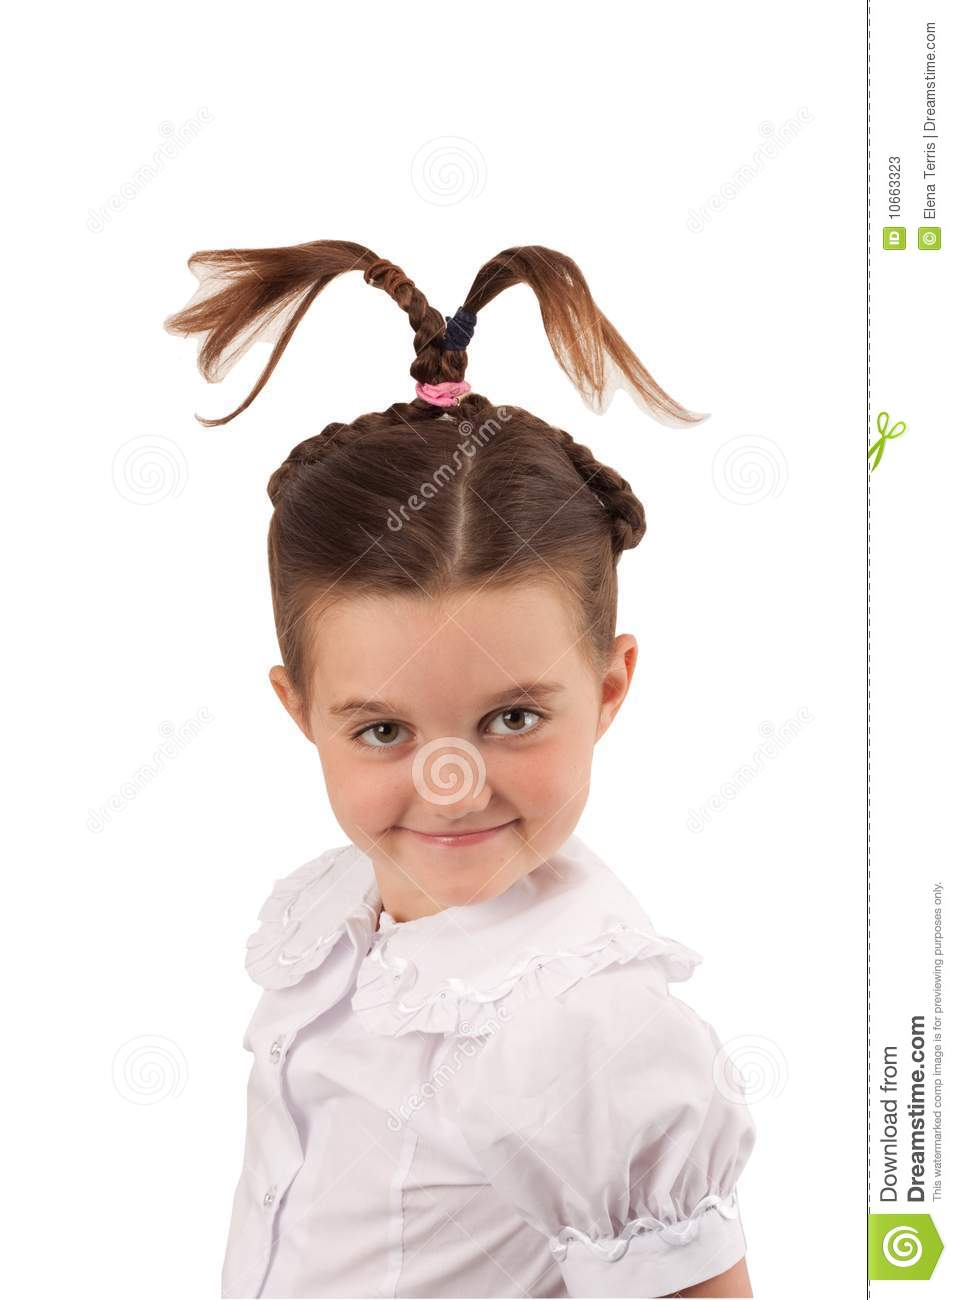 School Girl With Funny Hair Style 5 Stock Image Image Of Hair